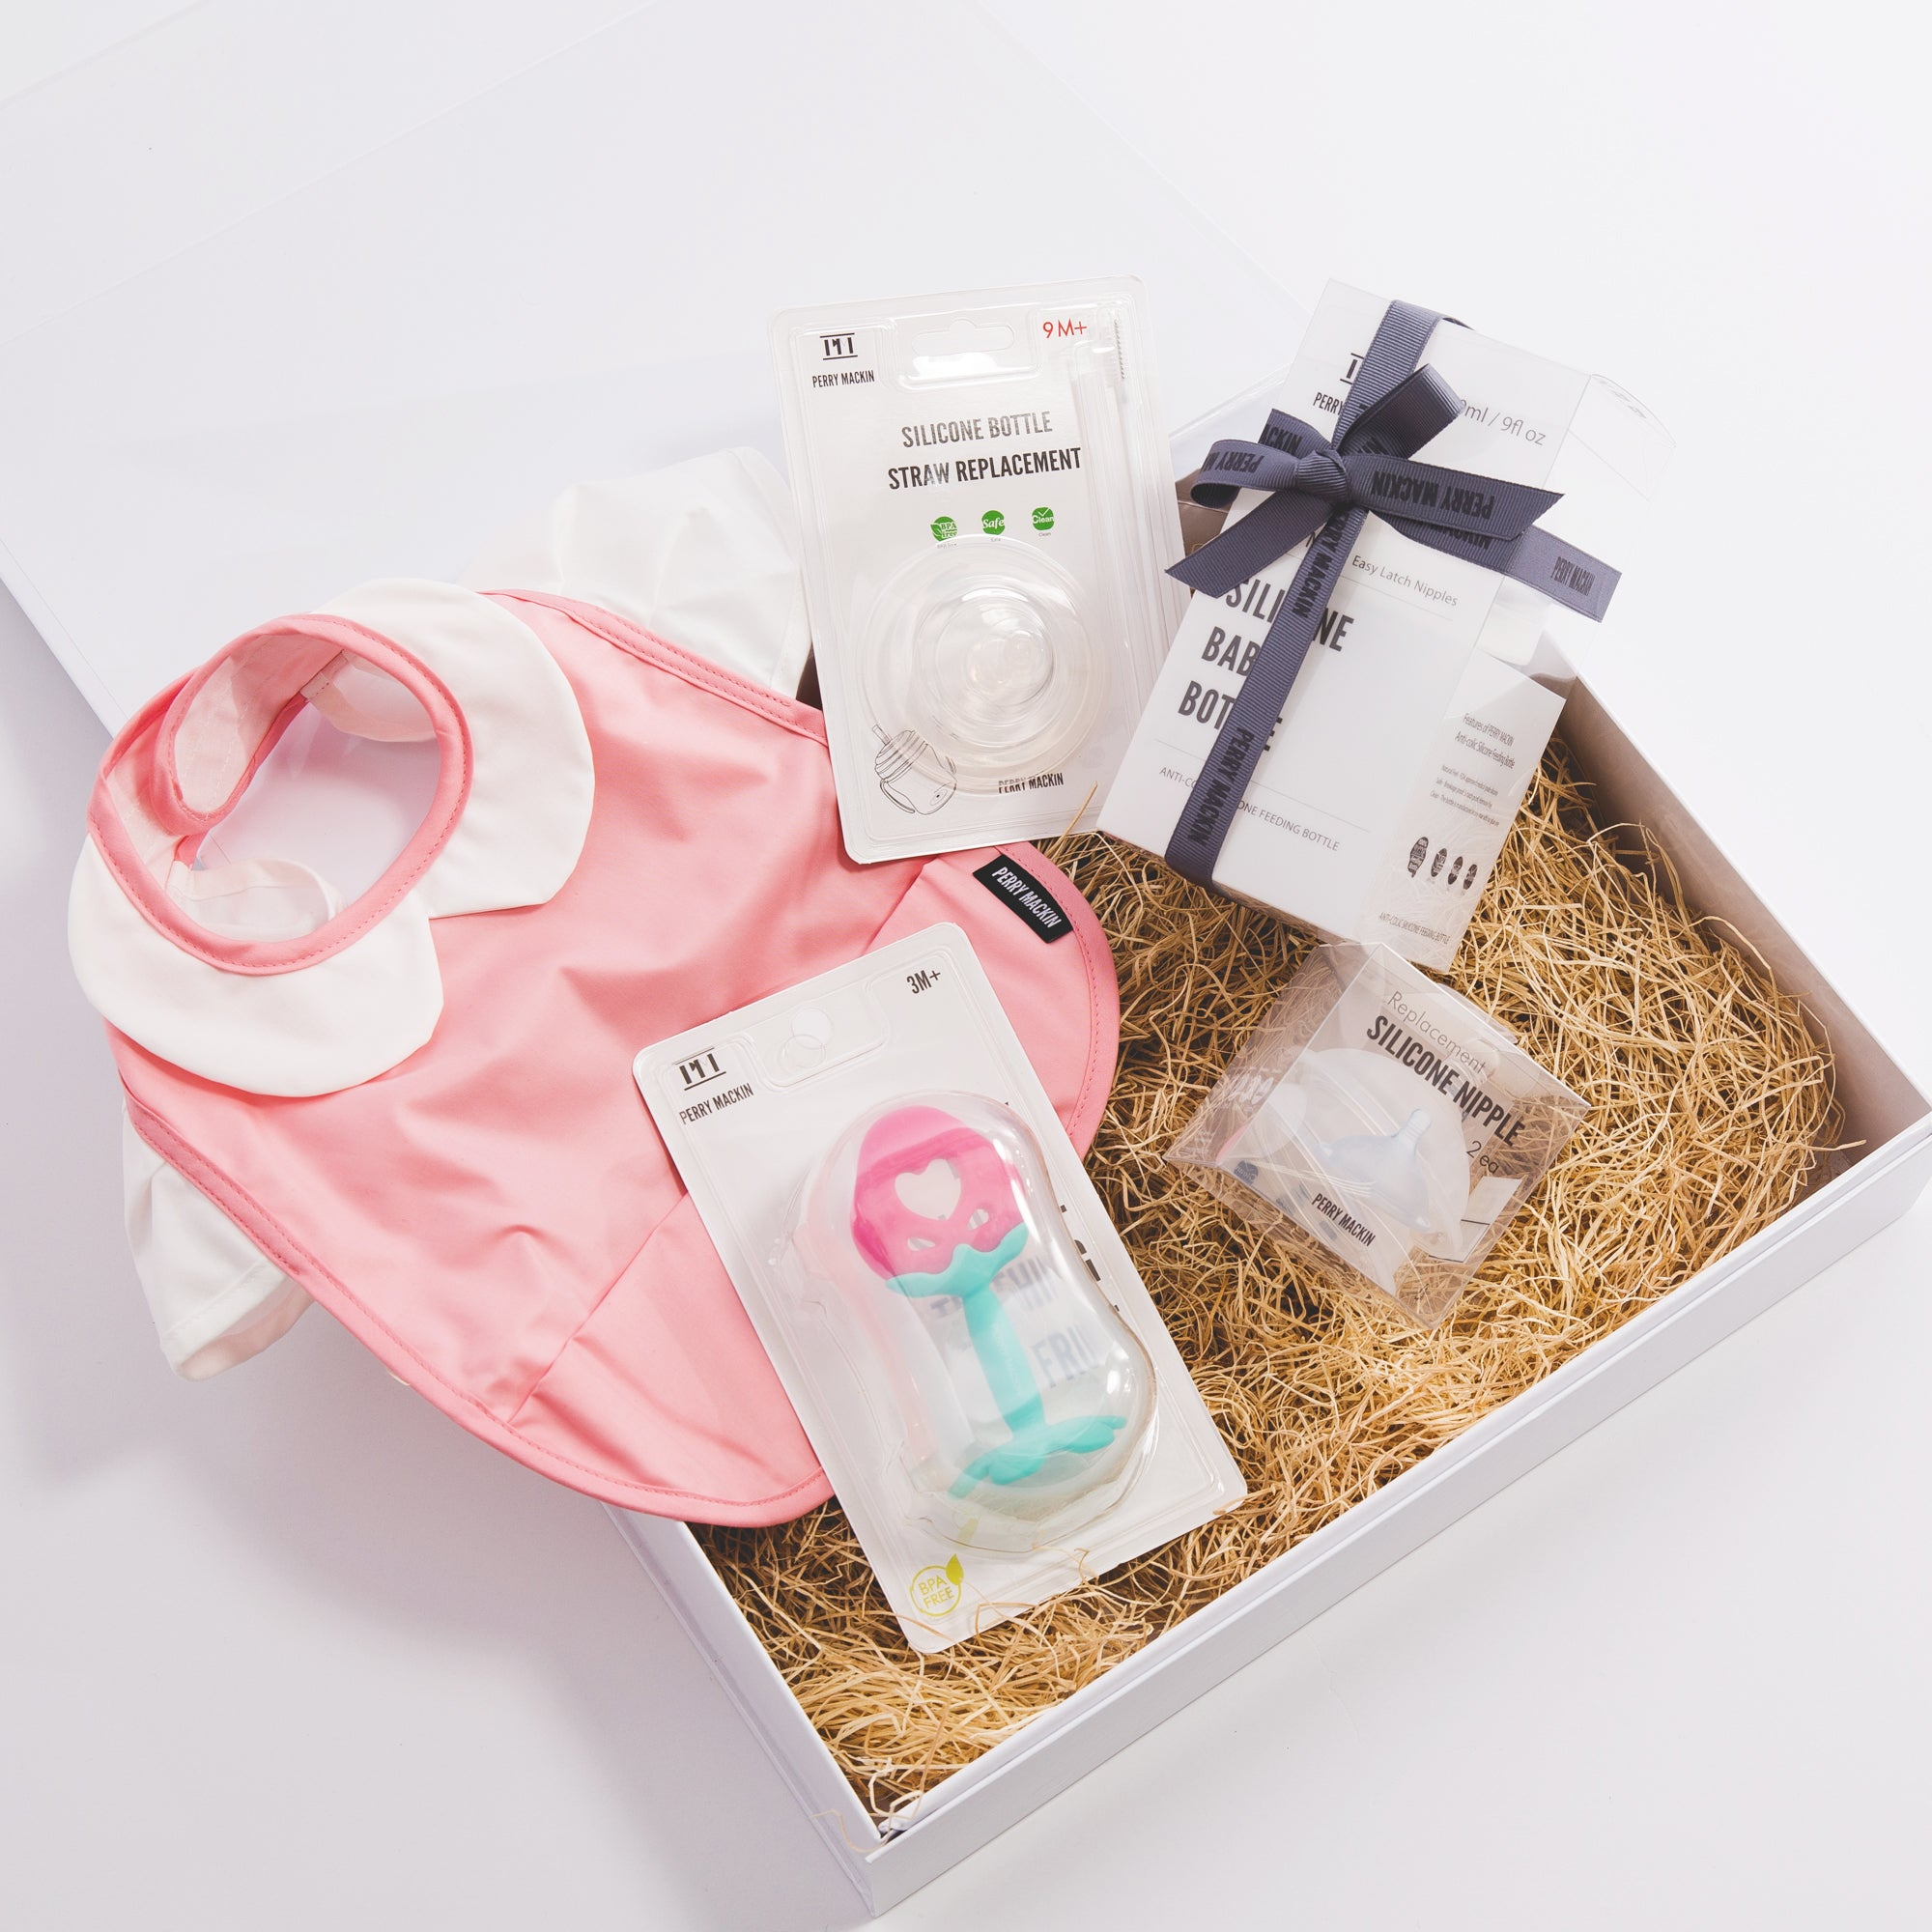 Silicone Meets Organic Cotton Gift Set